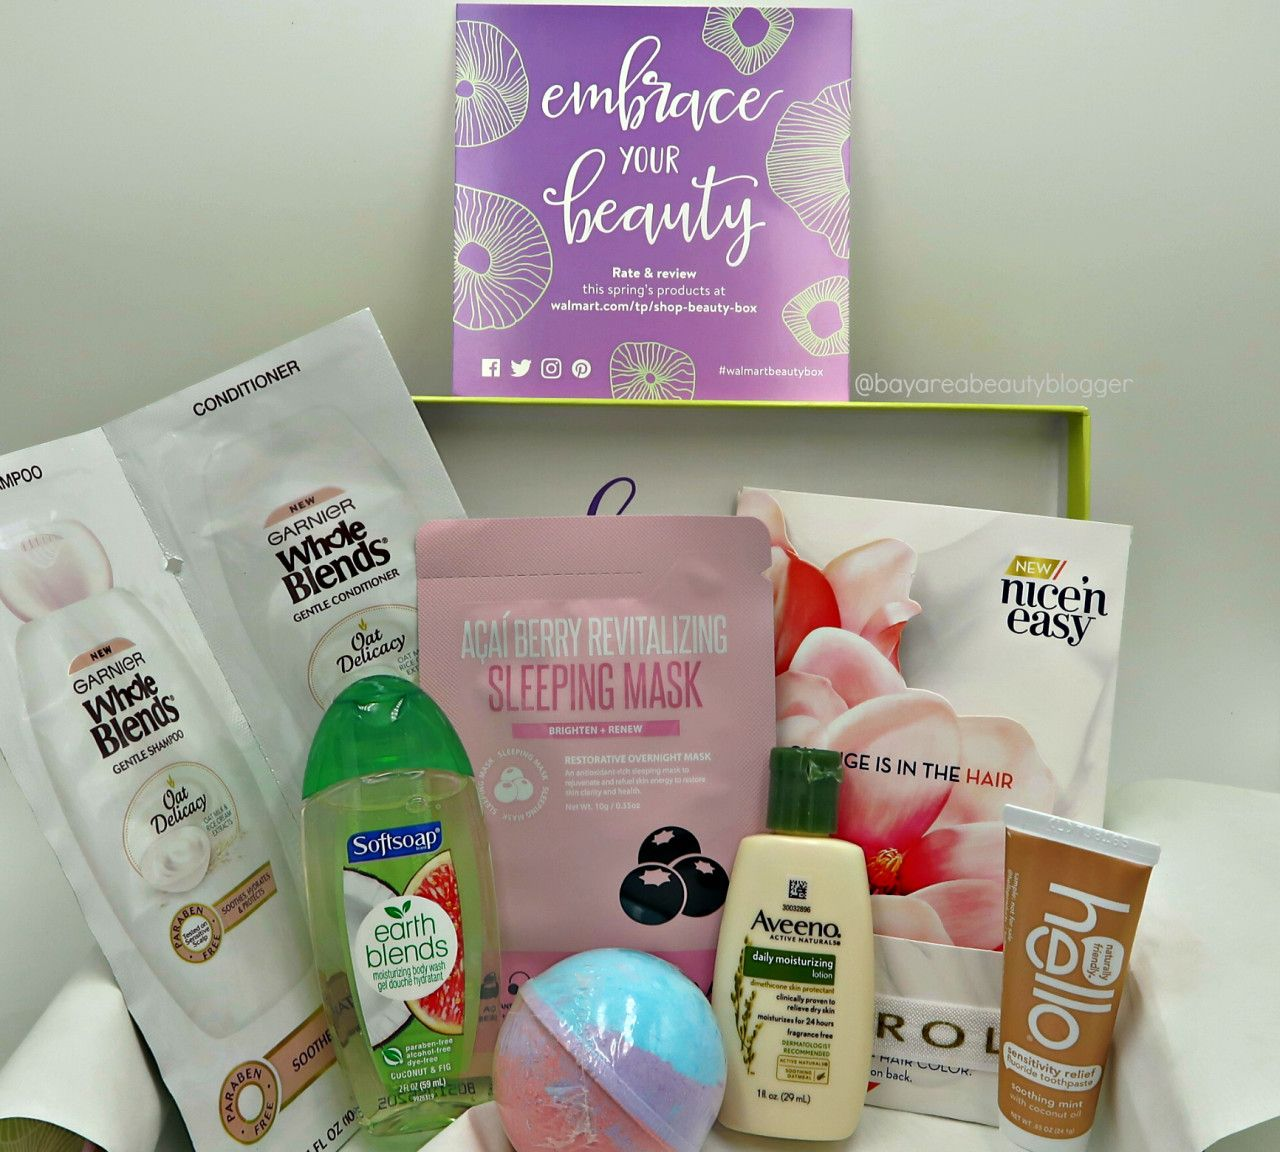 Only 5‼ Walmart Beauty Box Spring 2018 Unboxing and Review https